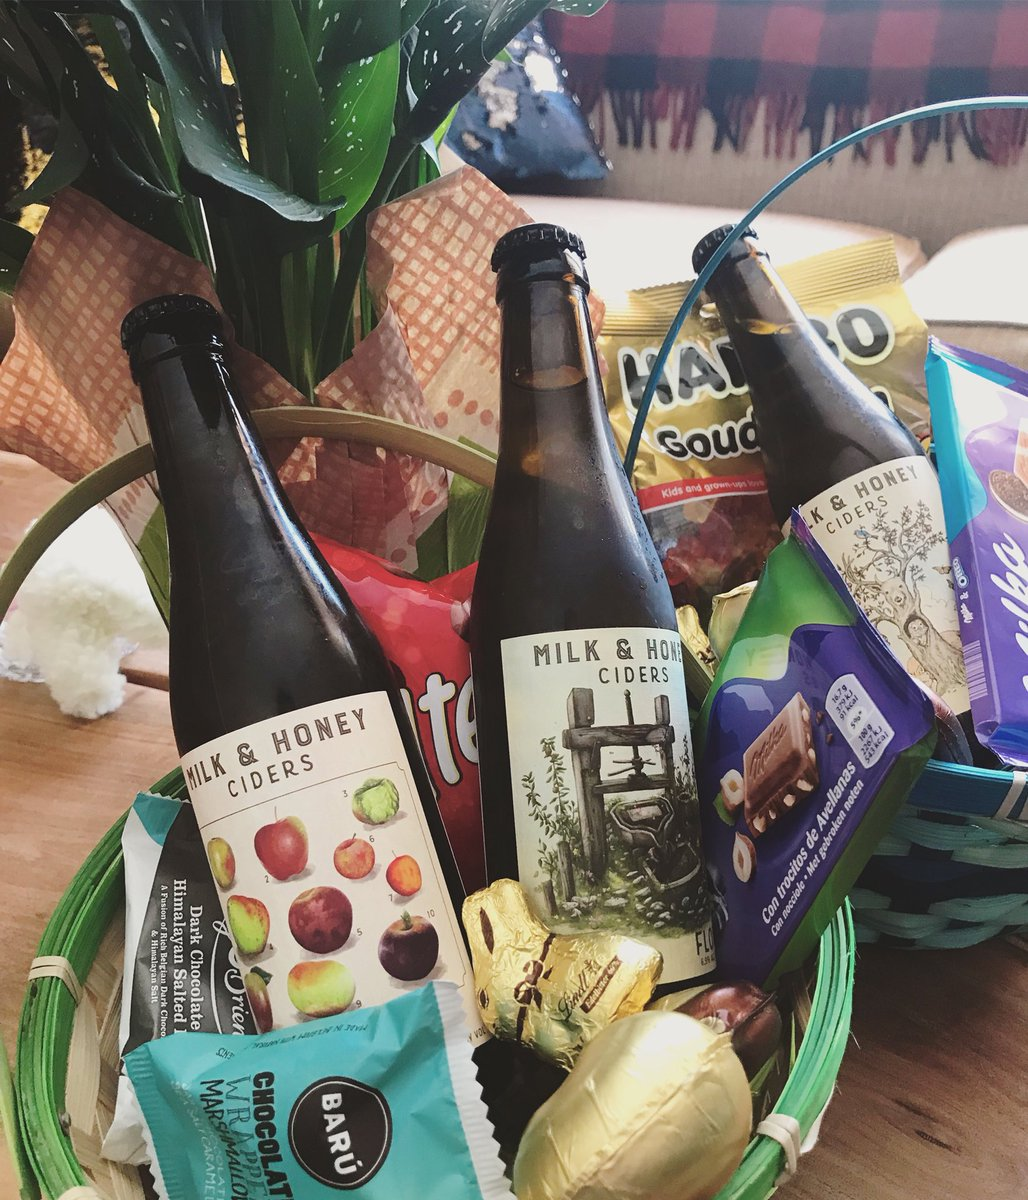 Milk Honey Ciders On Twitter Easter Bunny Was Way On Point This